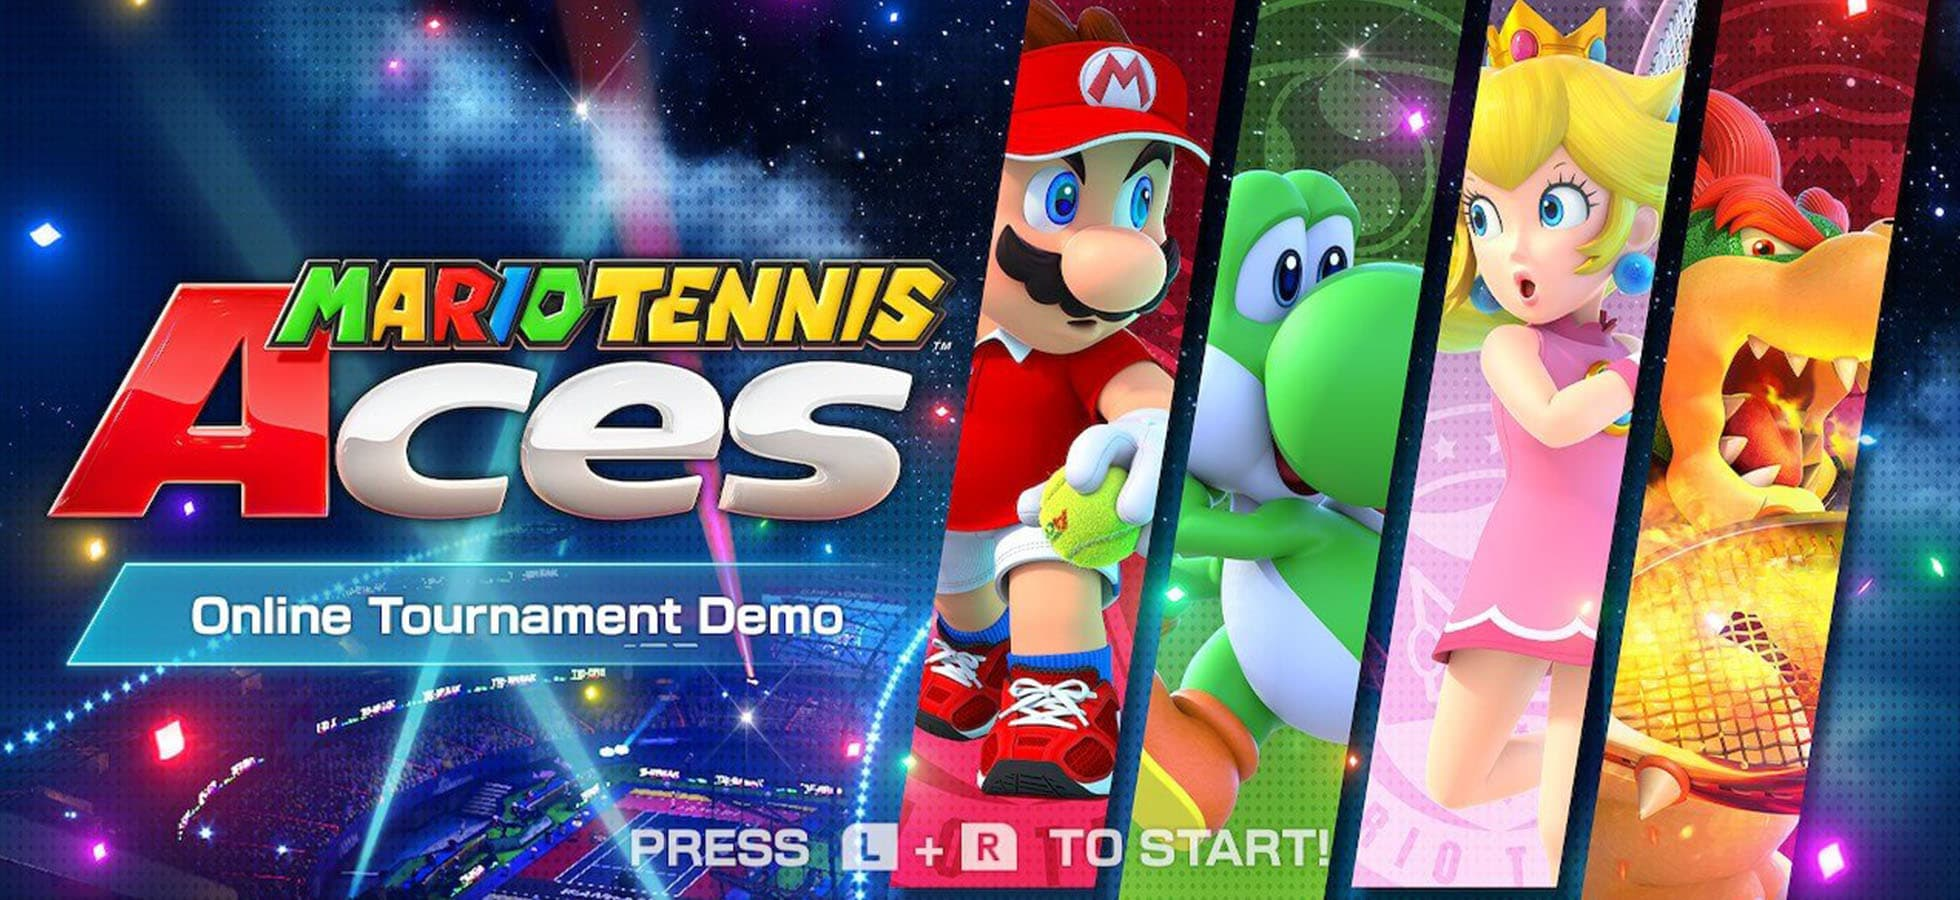 Mario Tennis Aces Online Tournament – What I thought